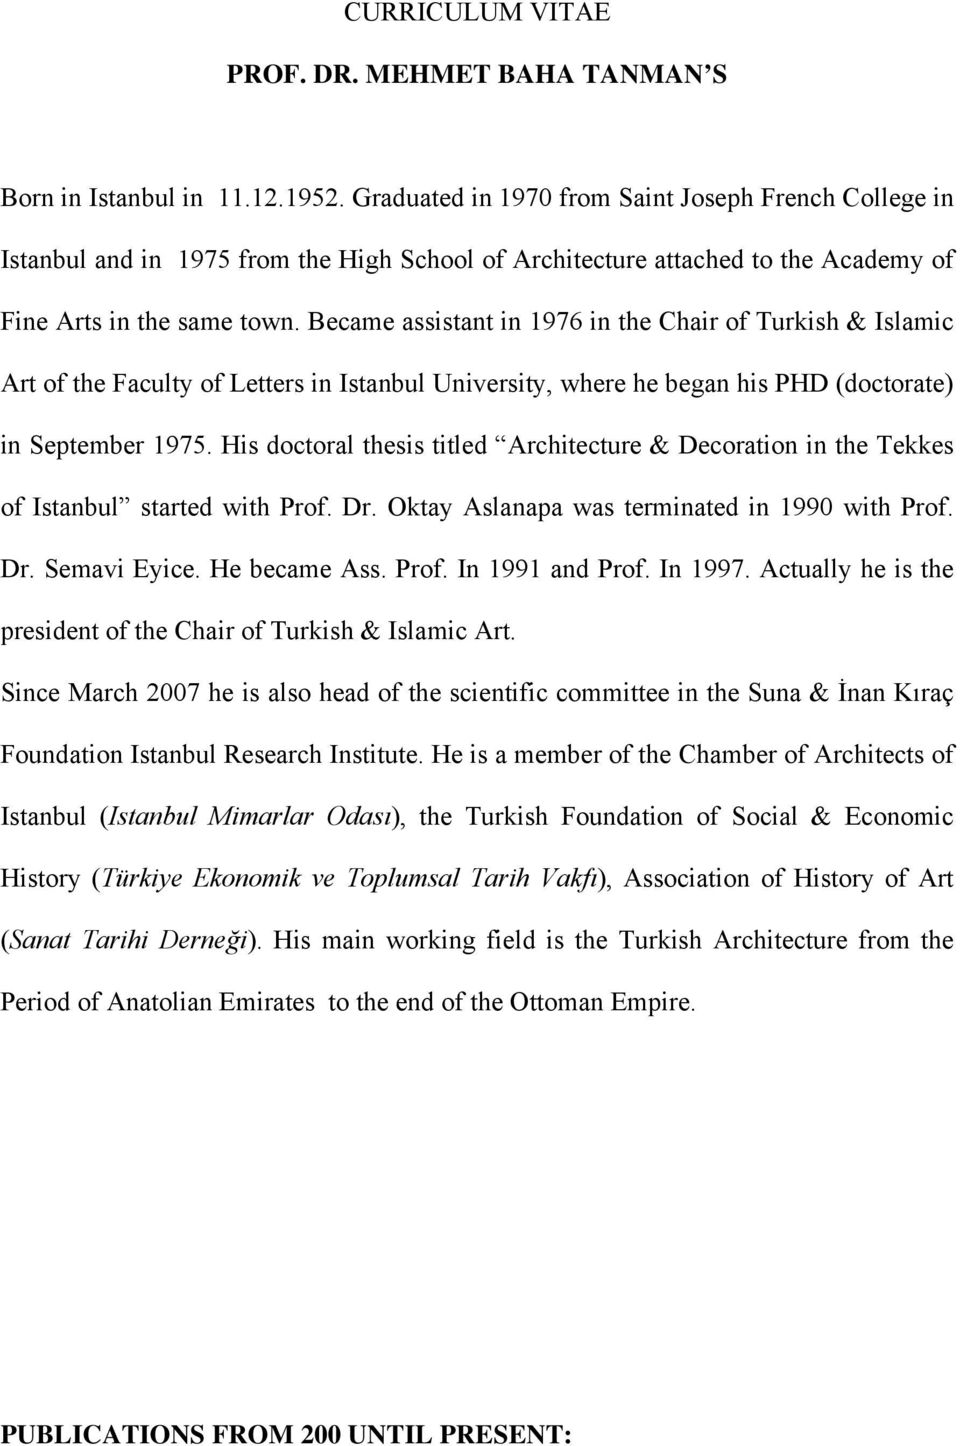 Became assistant in 1976 in the Chair of Turkish & Islamic Art of the Faculty of Letters in Istanbul University, where he began his PHD (doctorate) in September 1975.